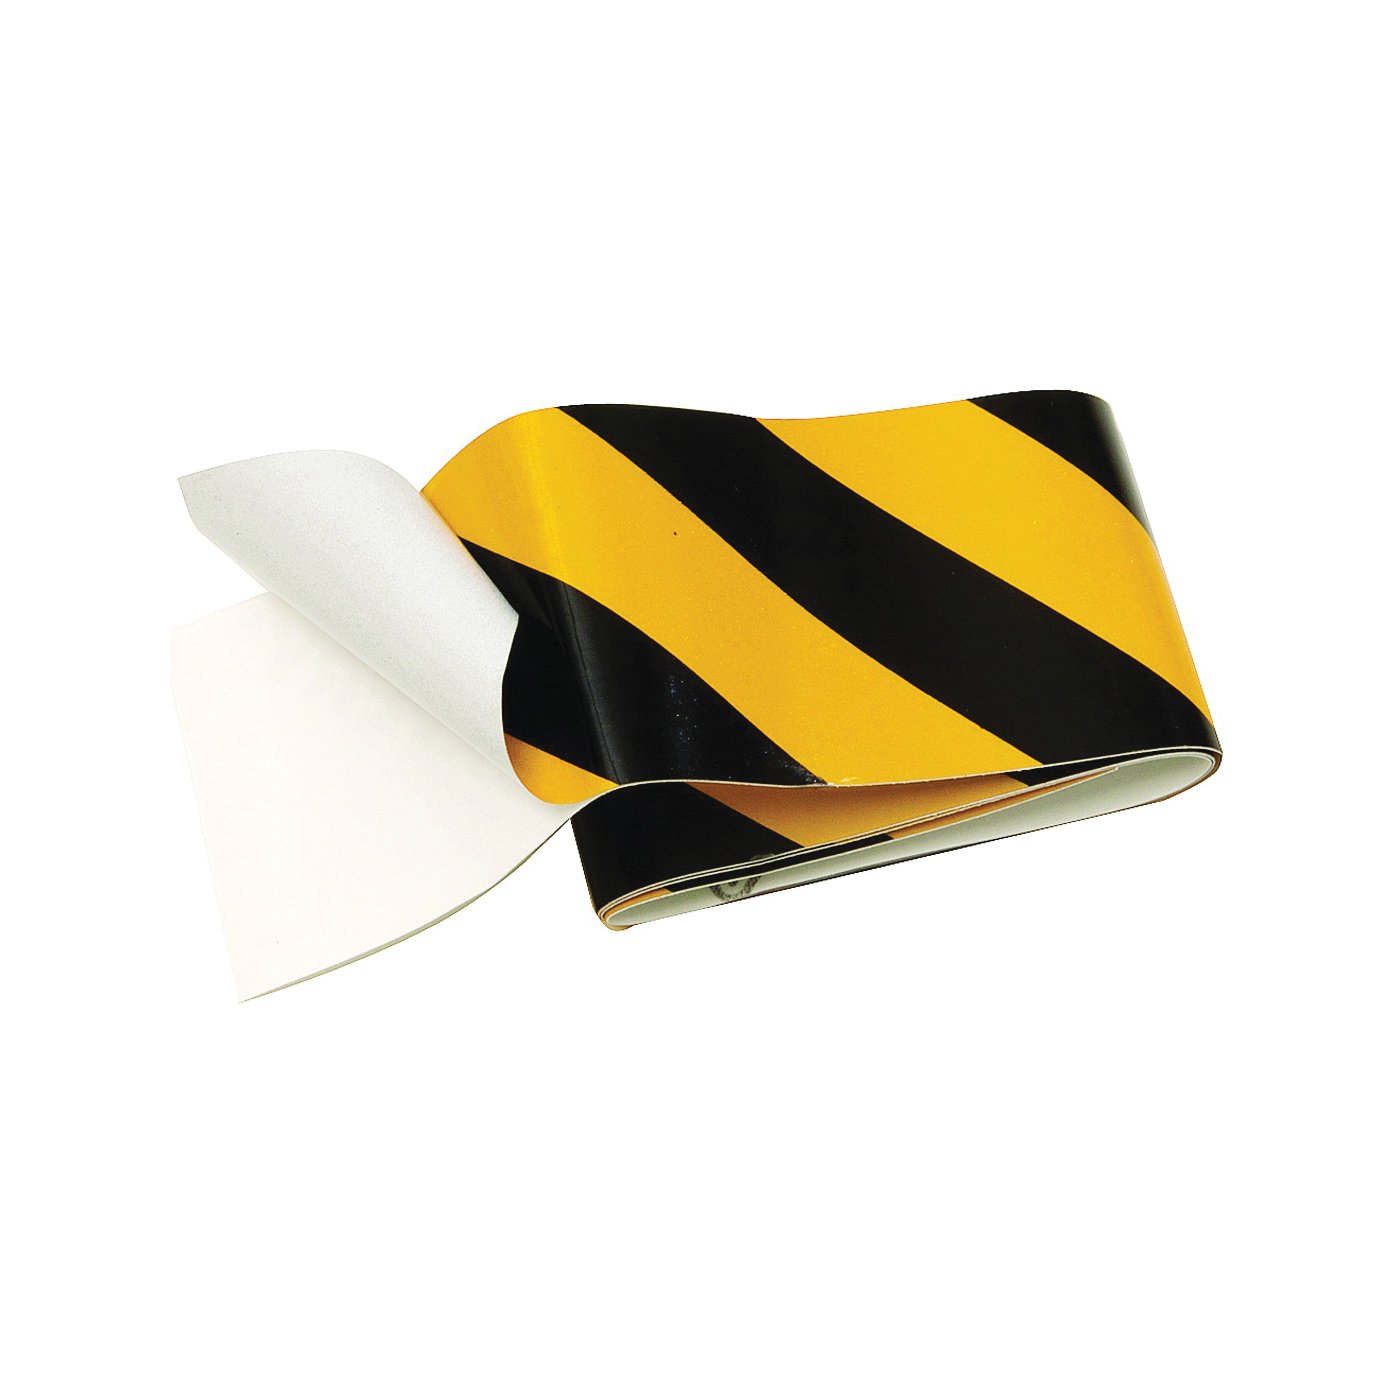 Picture of HY-KO TAPE-1 Reflective Safety Tape, 24 in L, 2 in W, Vinyl Backing, Black/Yellow